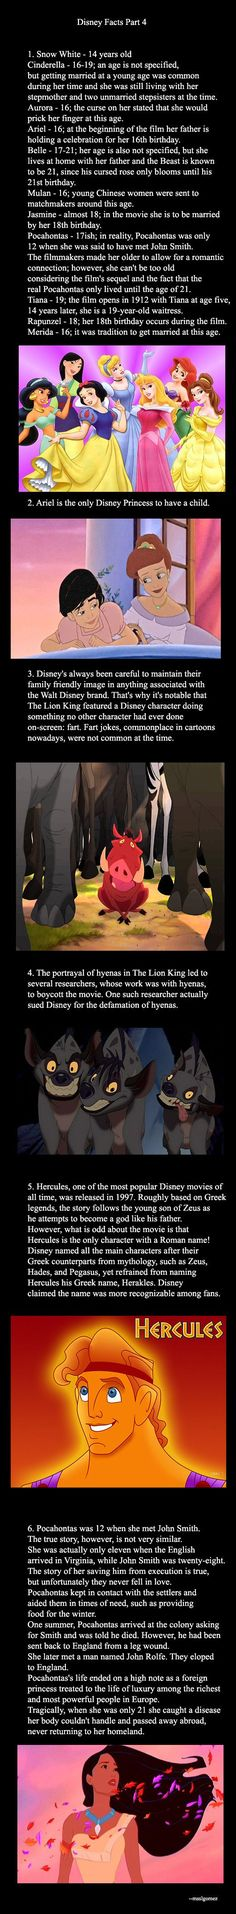 Disney Facts Part 4 (The last fact :That makes more since with the second movie, sucks that she dies at a young age though):